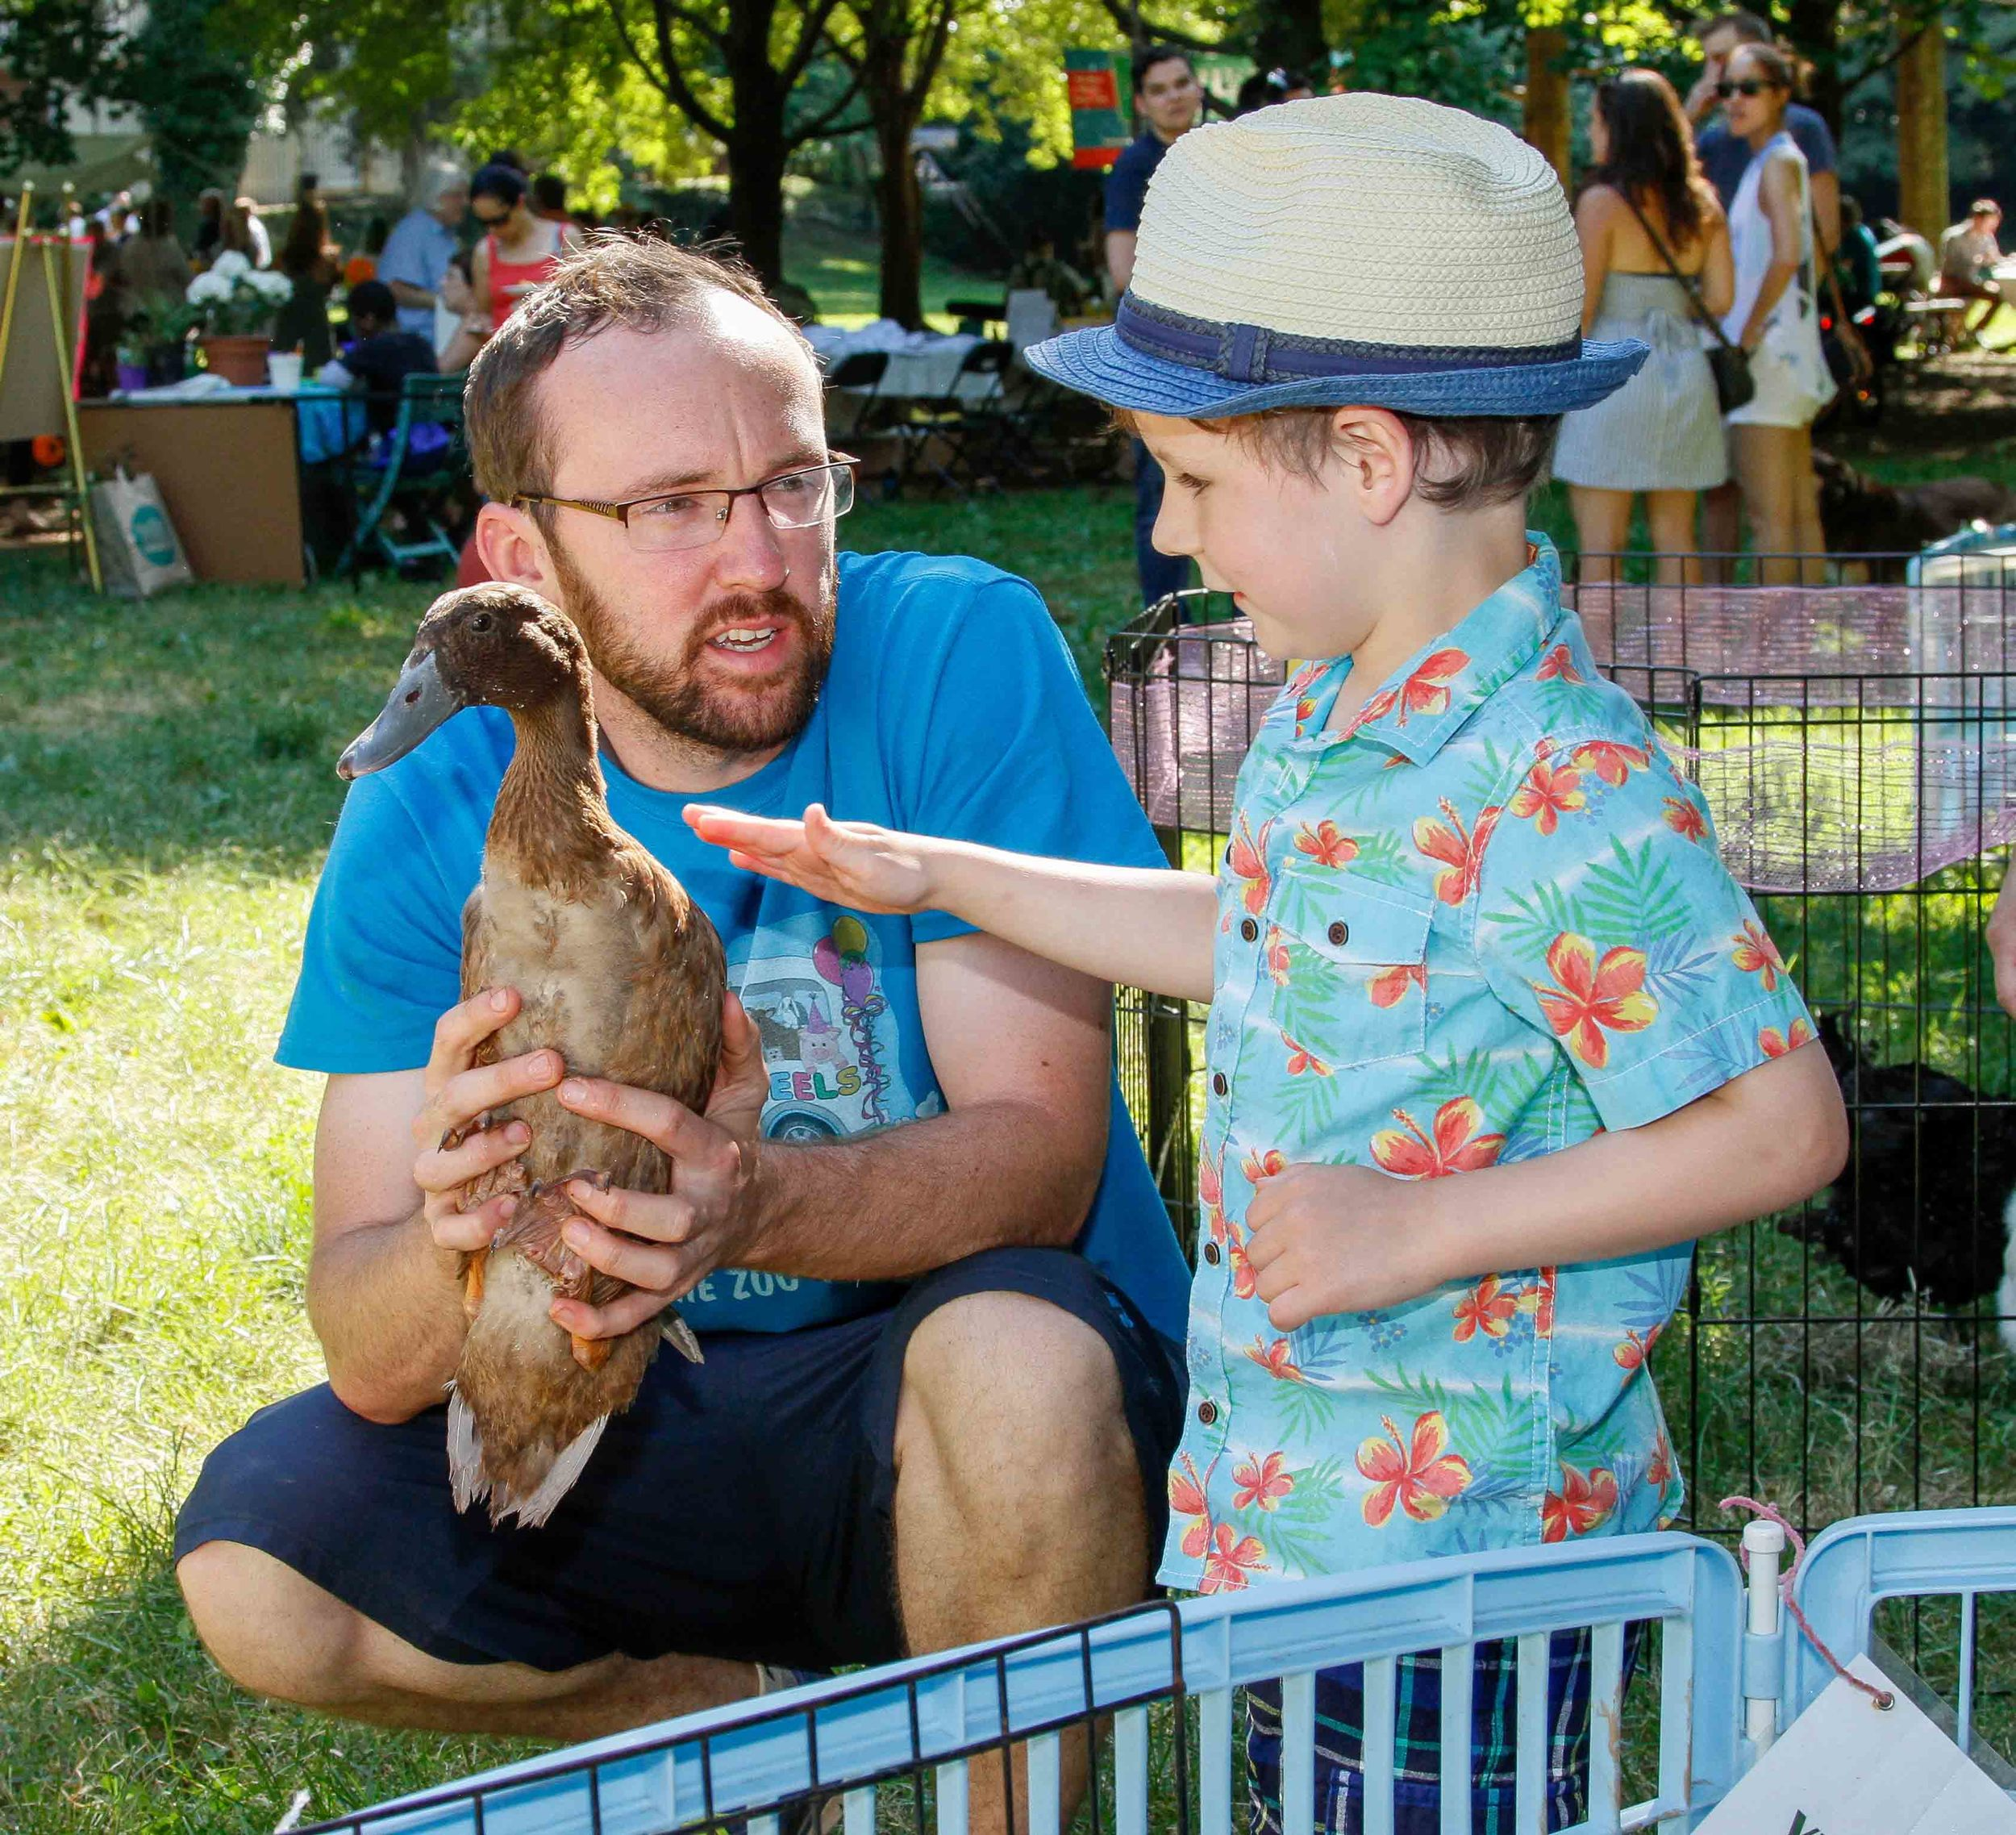 2016-Picnic-PettingZoo_5541-small.jpg